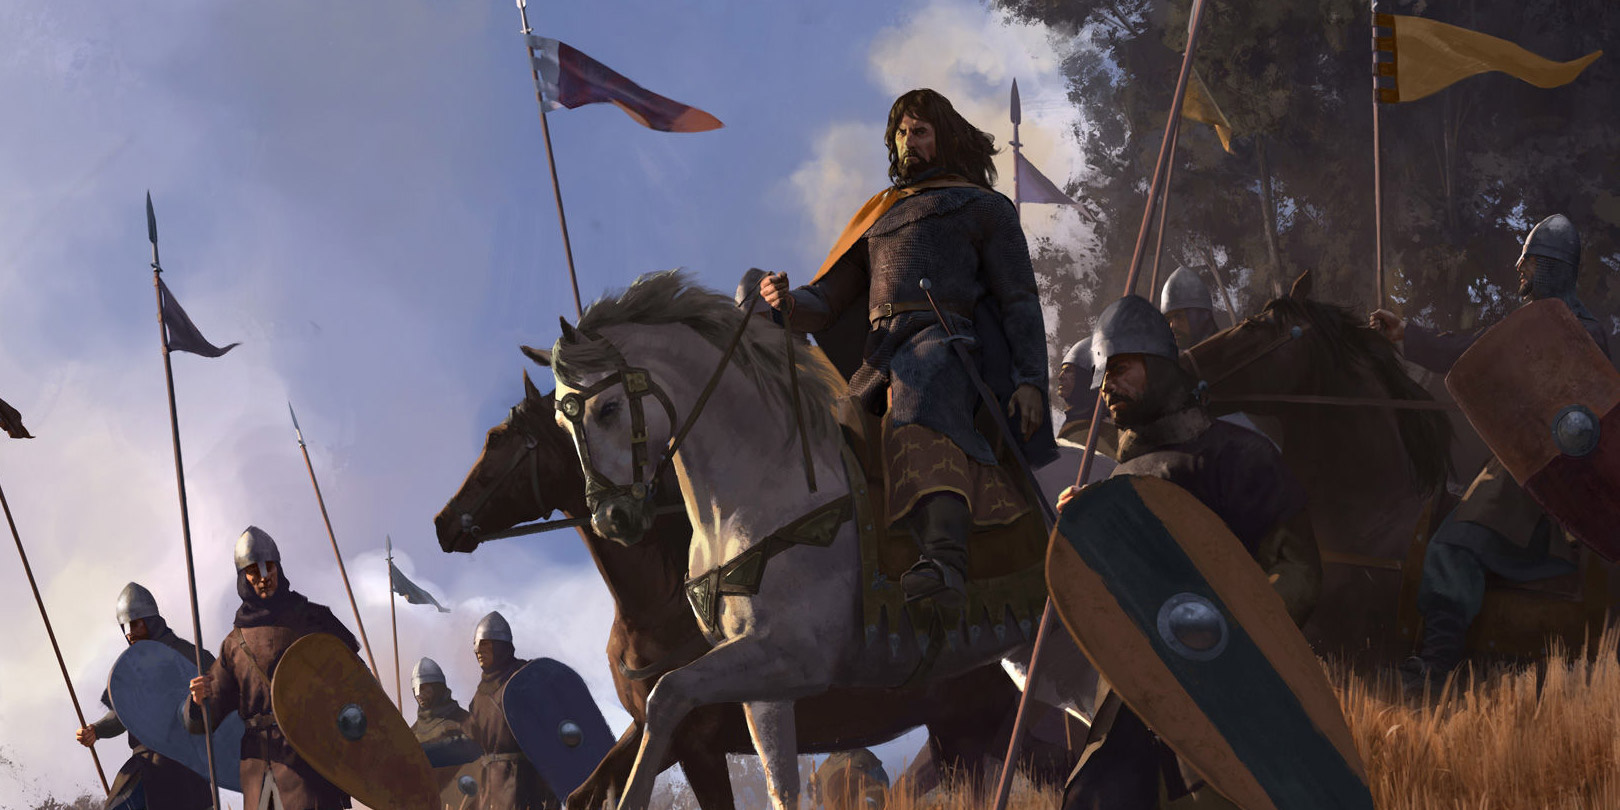 mount and blade 2 vlandians